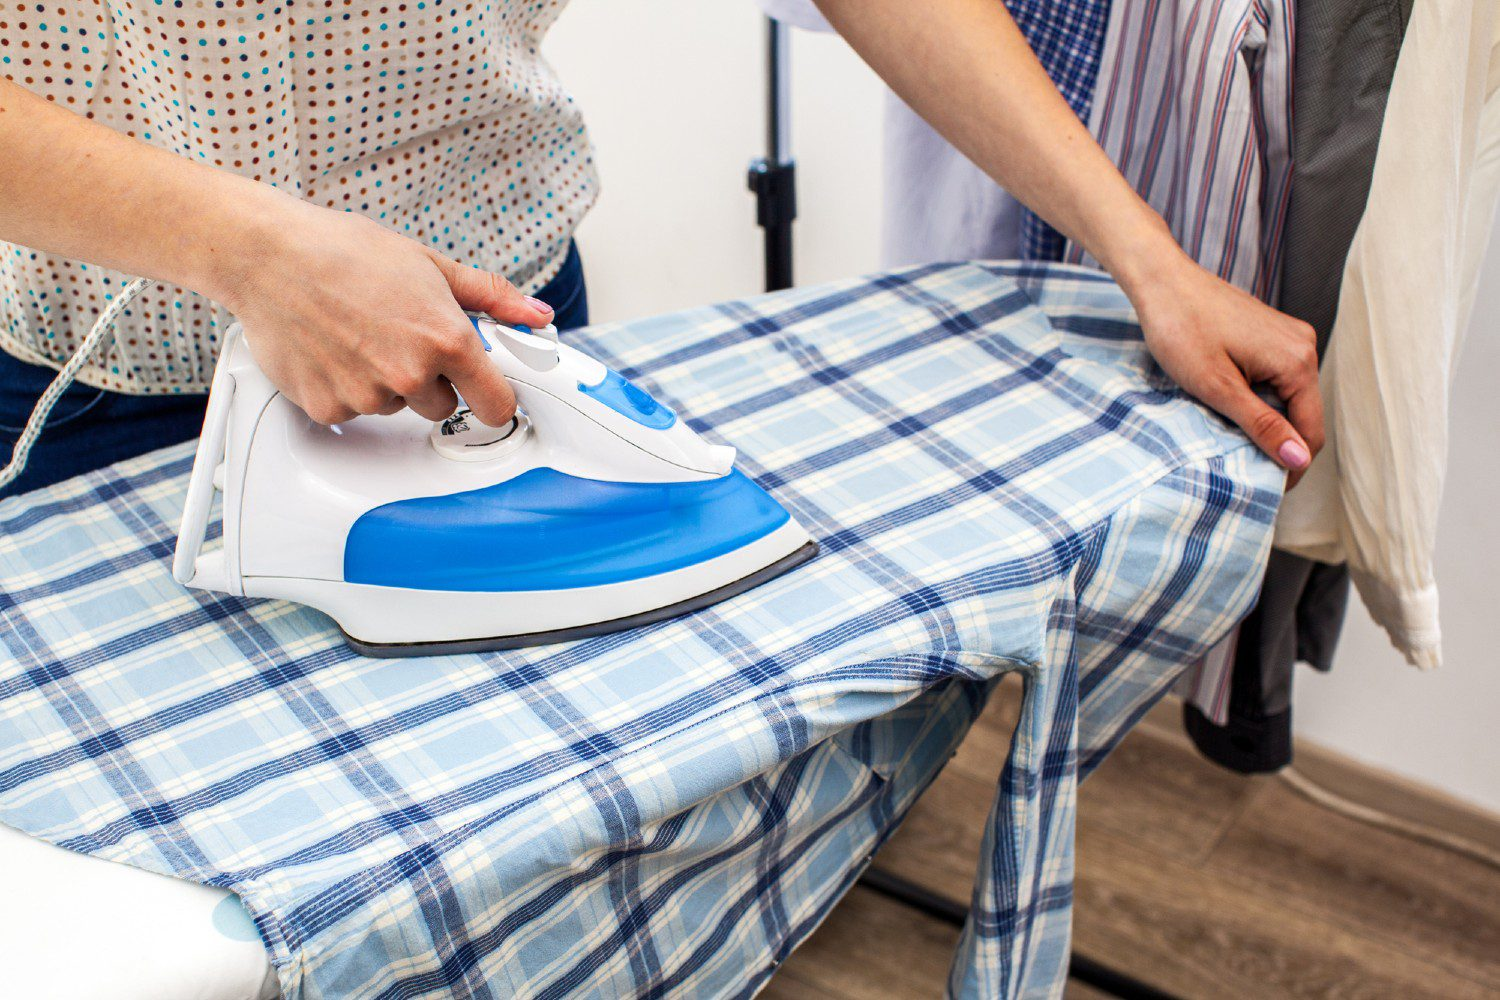 Ironing on a board in a small space